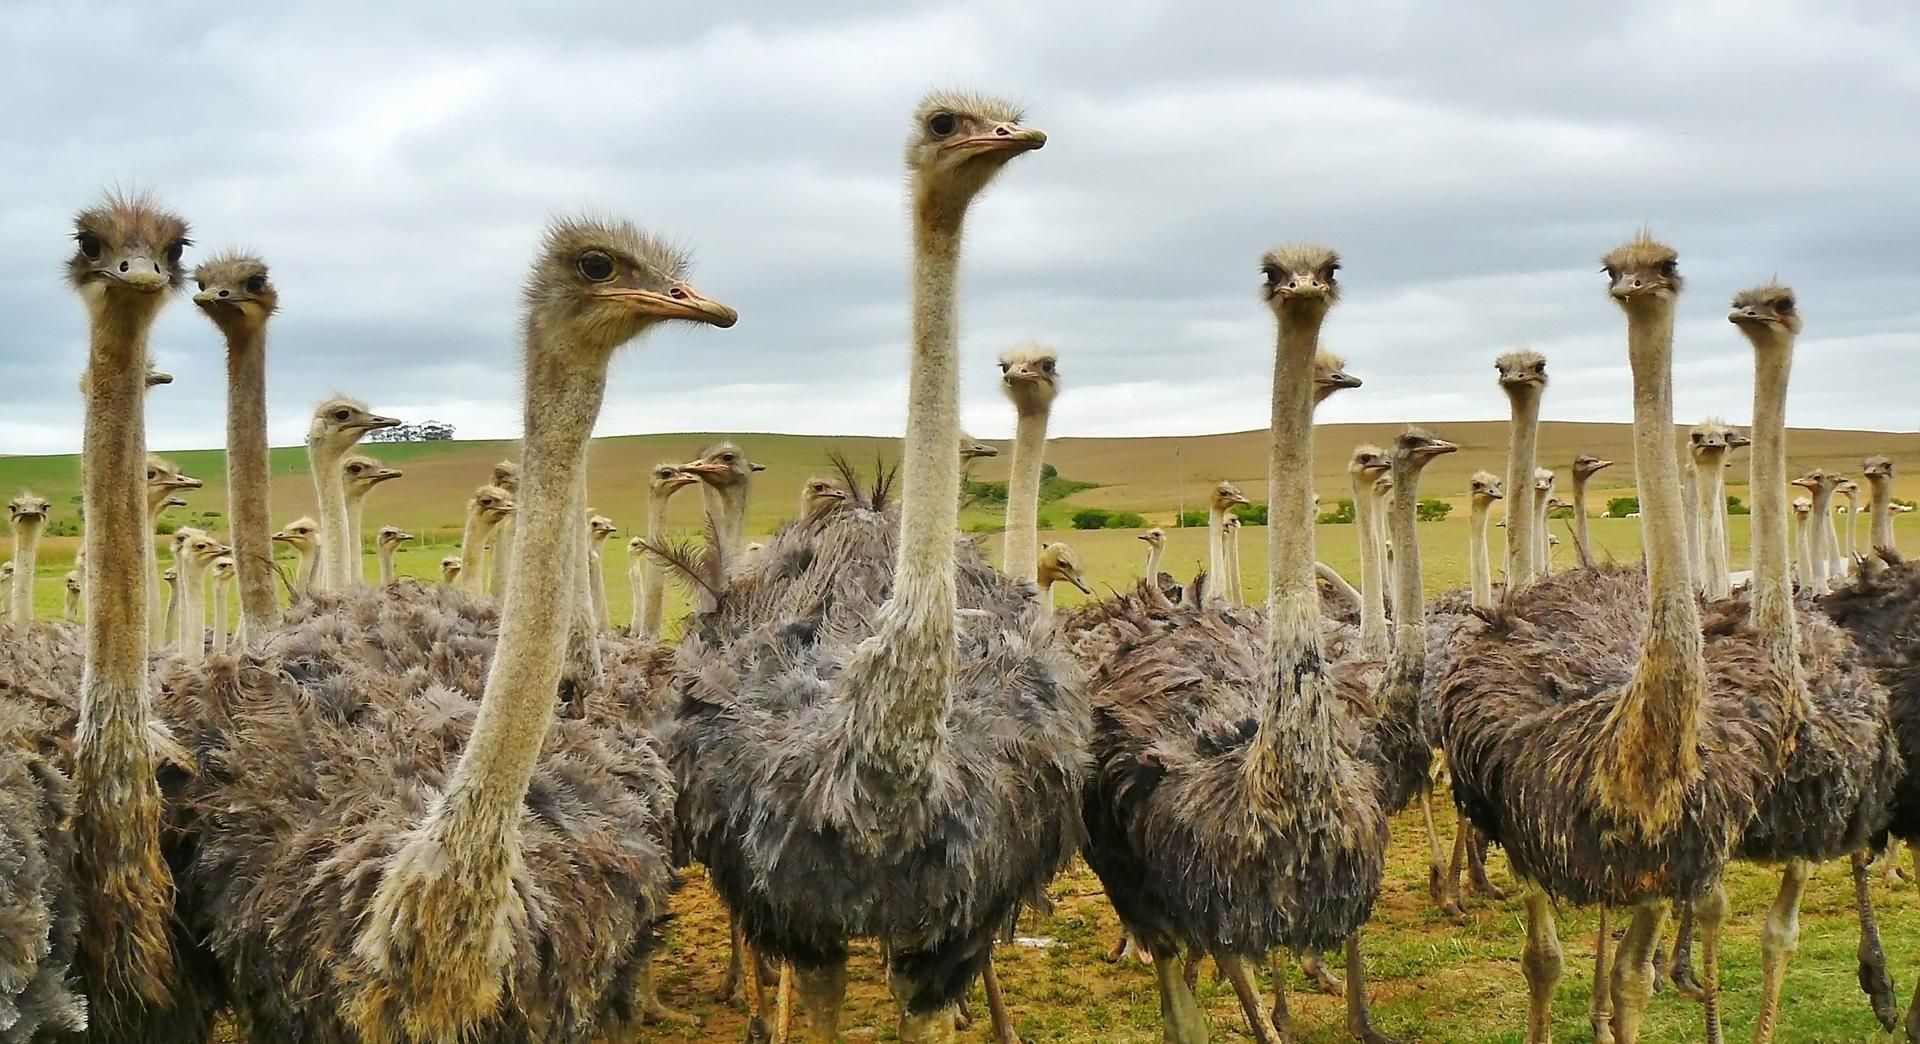 Multiple ostriches standing